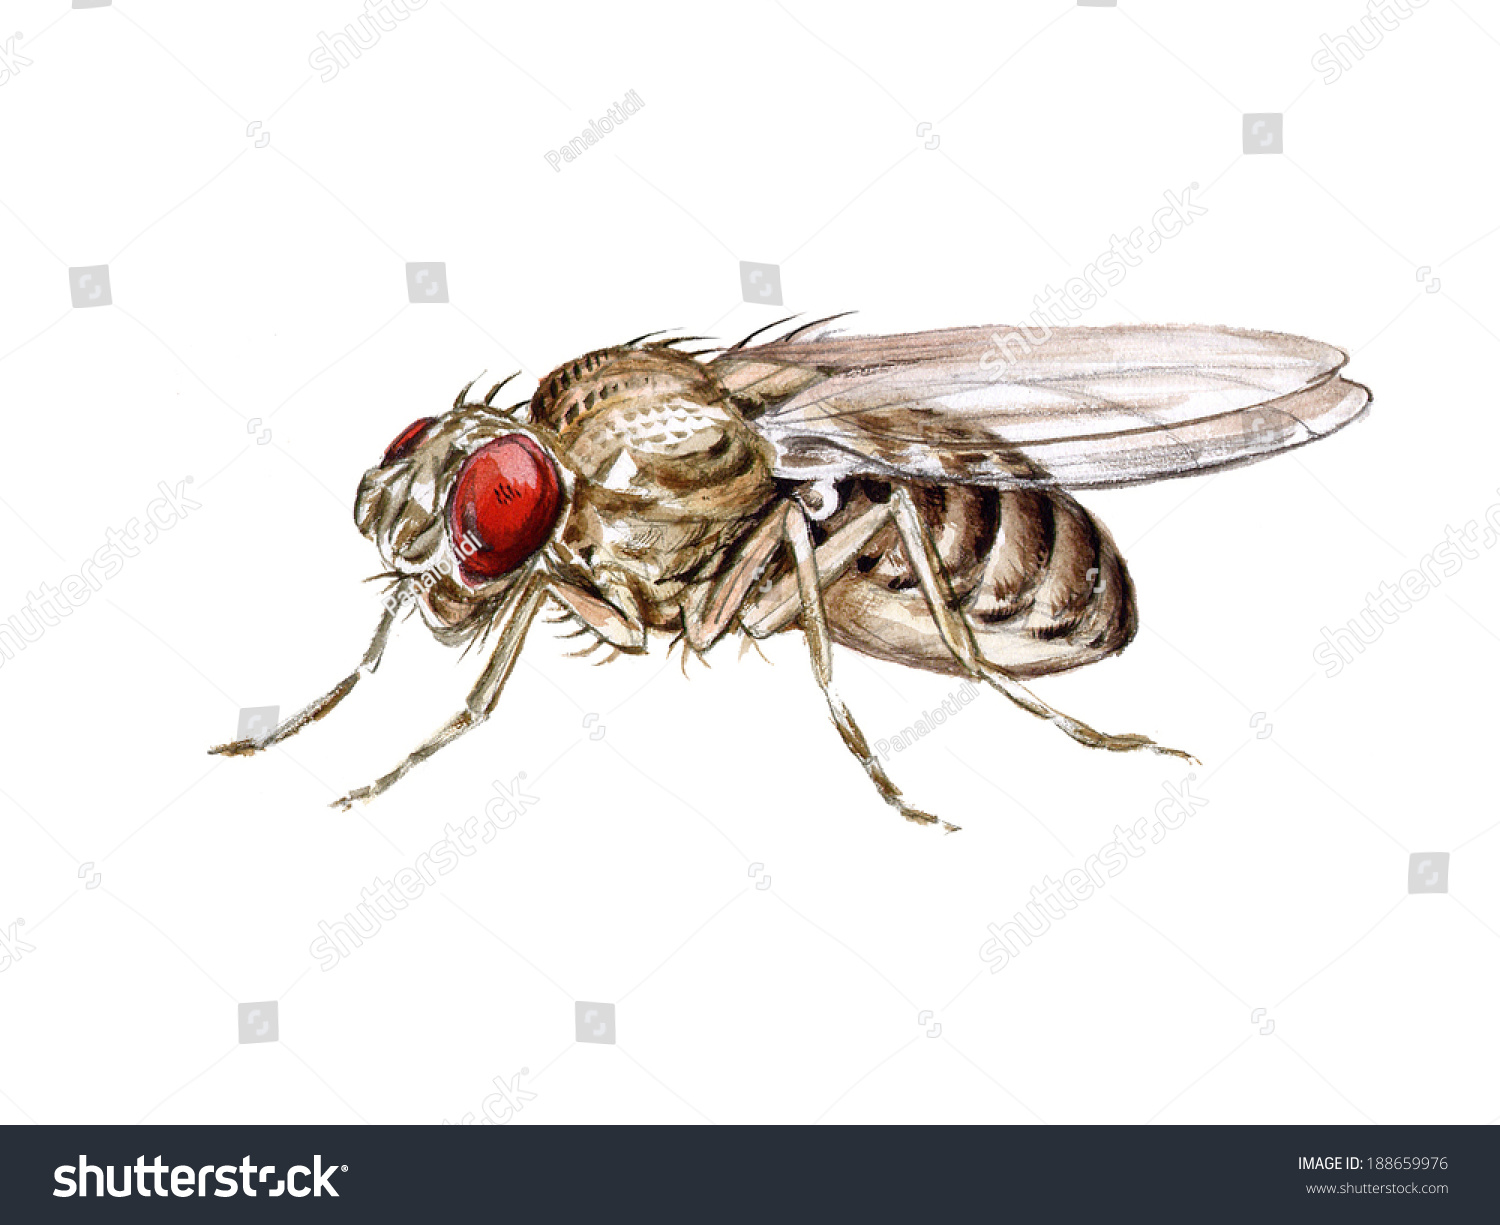 fruit fly clipart - photo #50